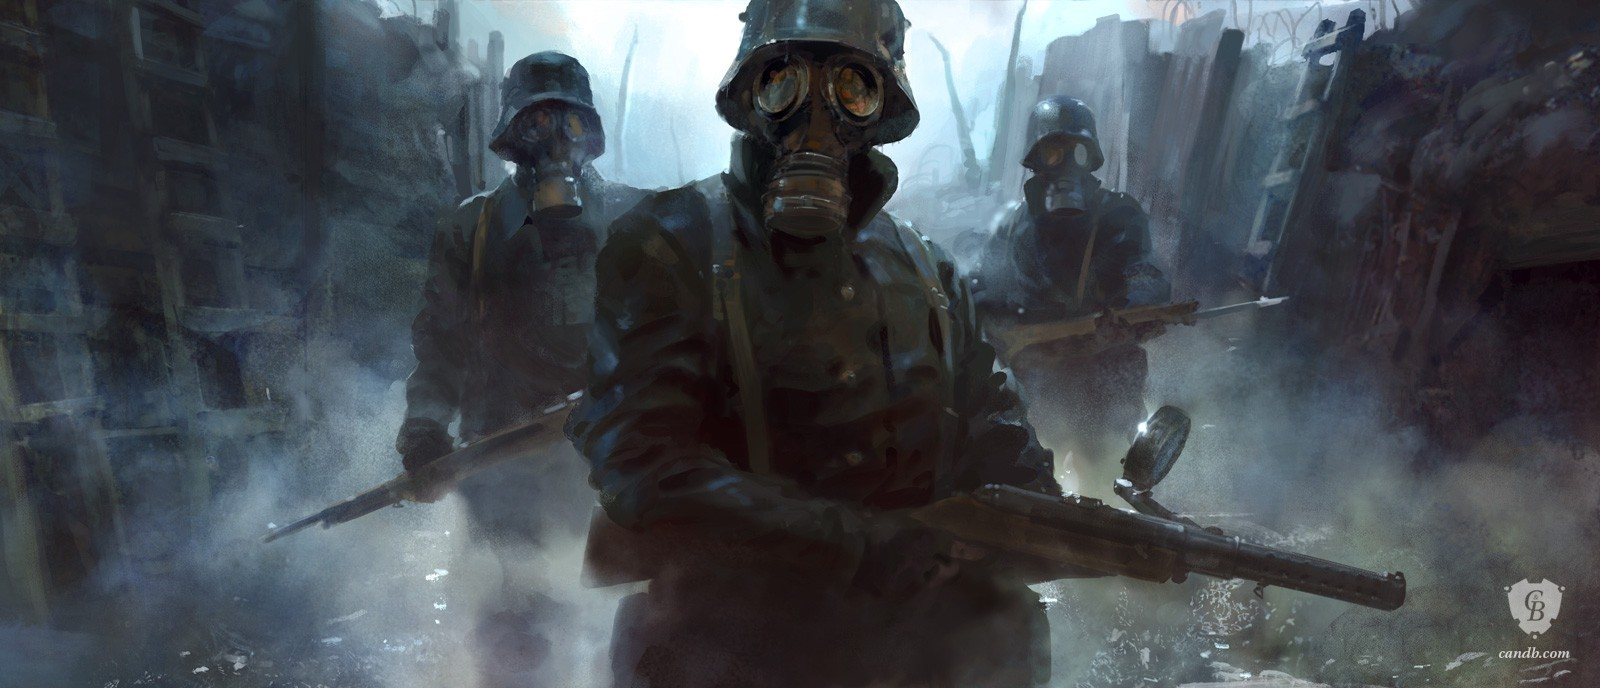 artwork trench soldiers battlefield 1 dice